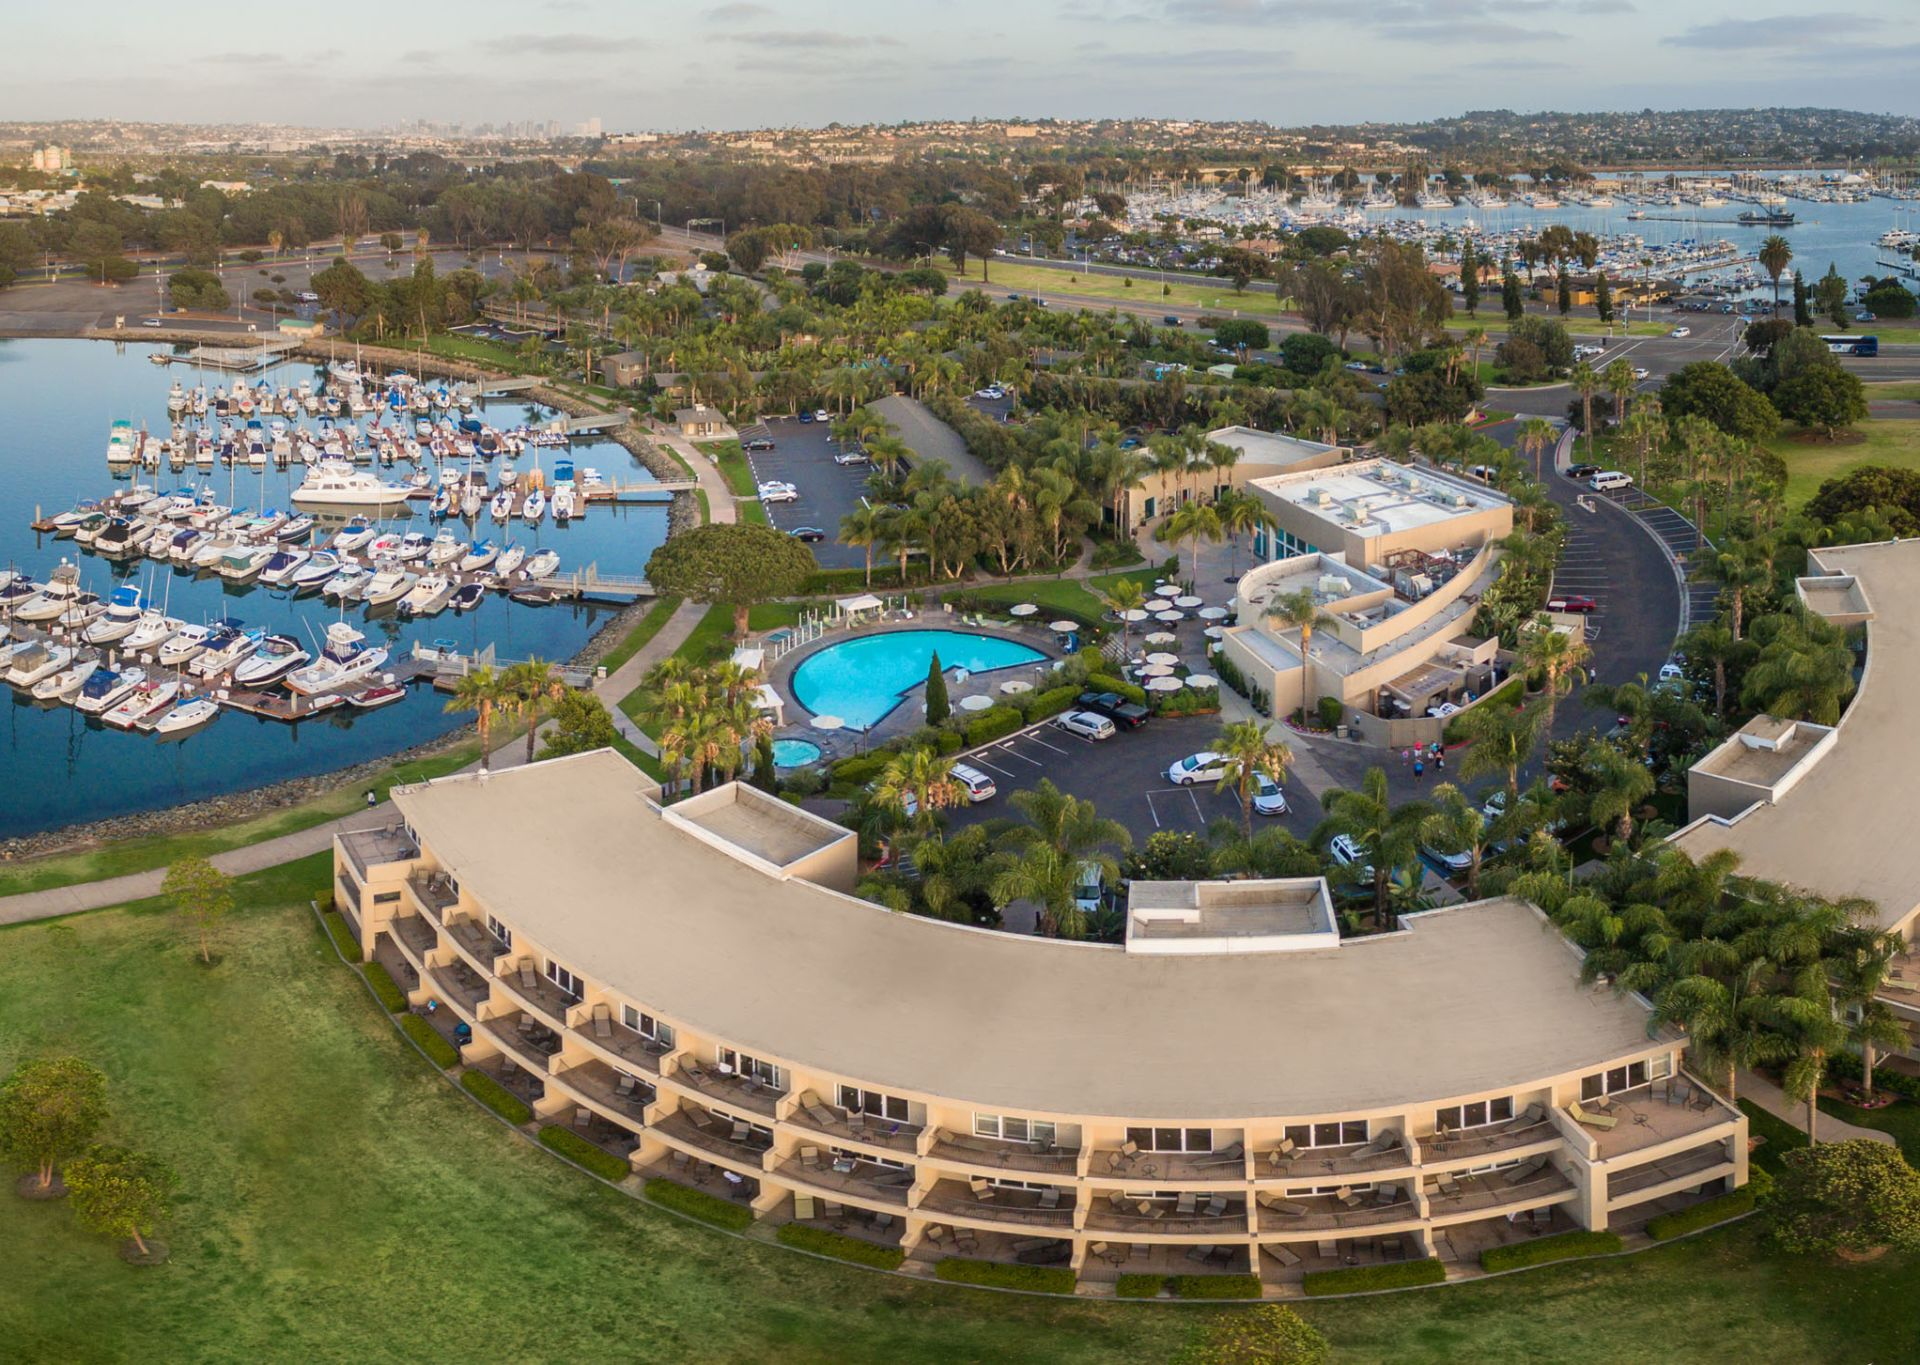 Mission Bay San Diego Hotel | The Dana on Mission Bay